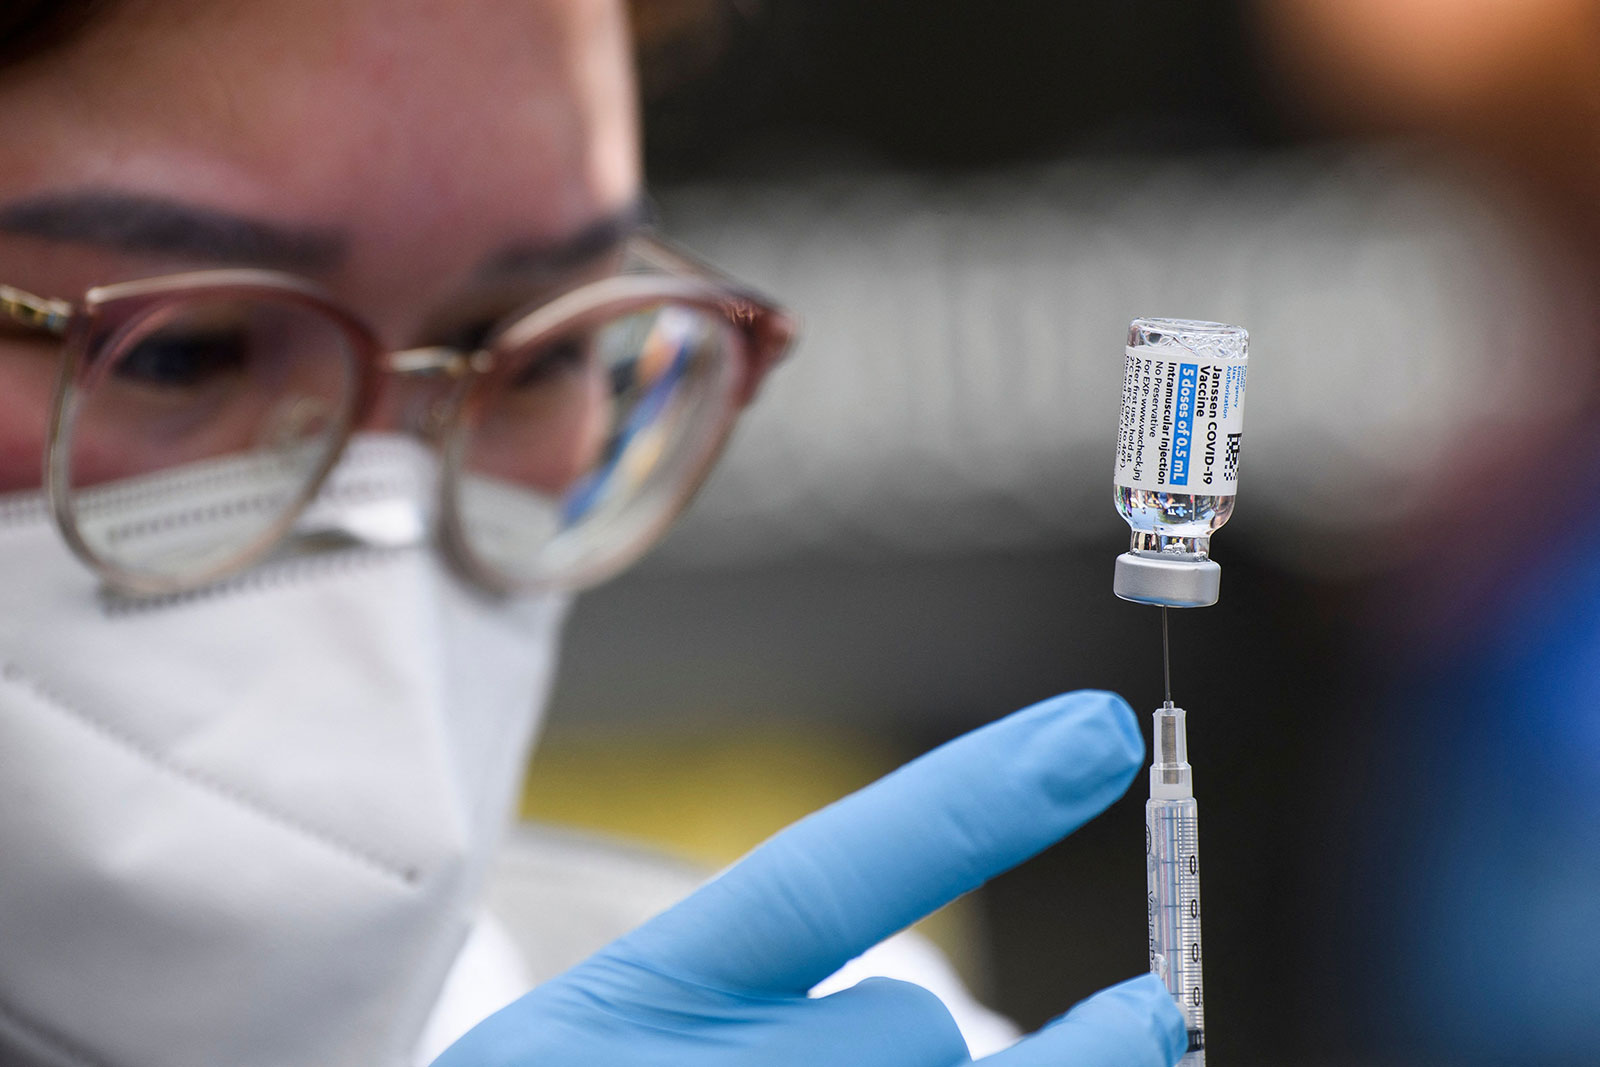 A dose of the Johnson & Johnson vaccine is prepared at a clinic in Los Angeles, California, on August 7.